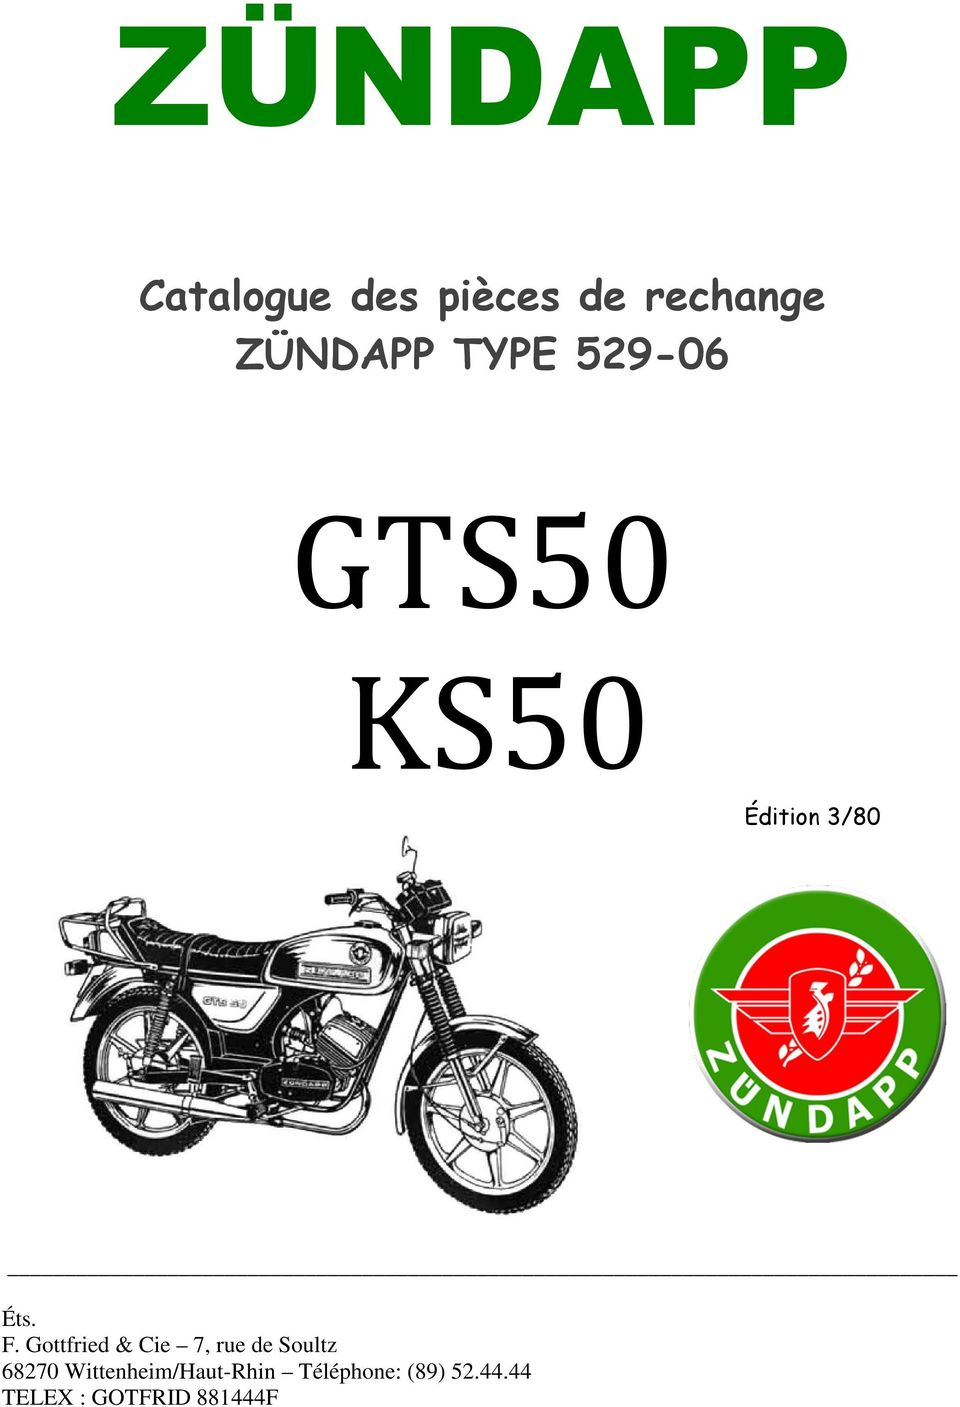 Zündapp Fixation Angle pages couvercle 529-10.164 GTS 50 type 529